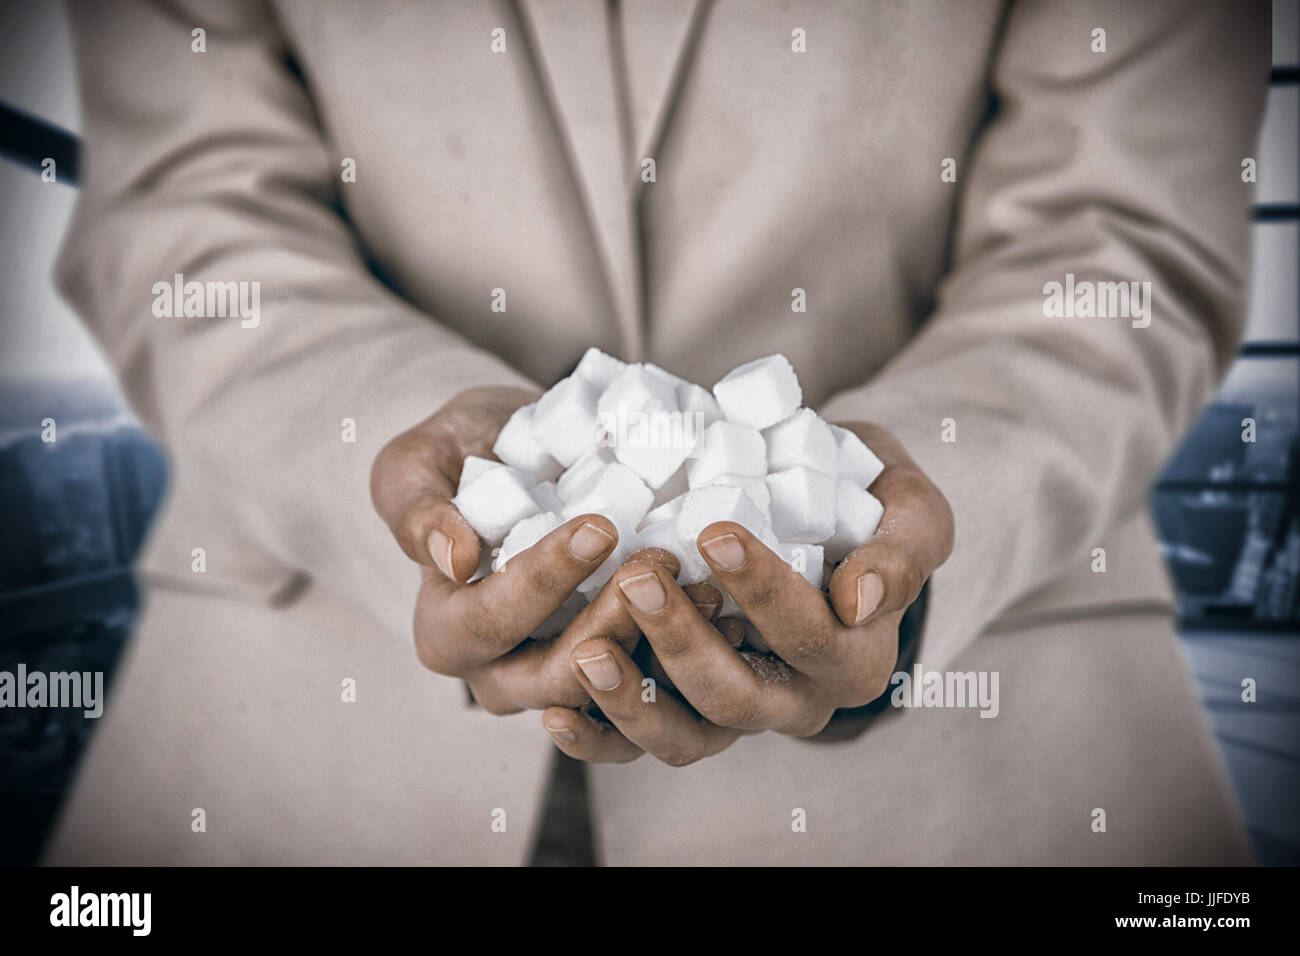 Womans hands cupped with sugar cubes against room with large window showing city - Stock Image